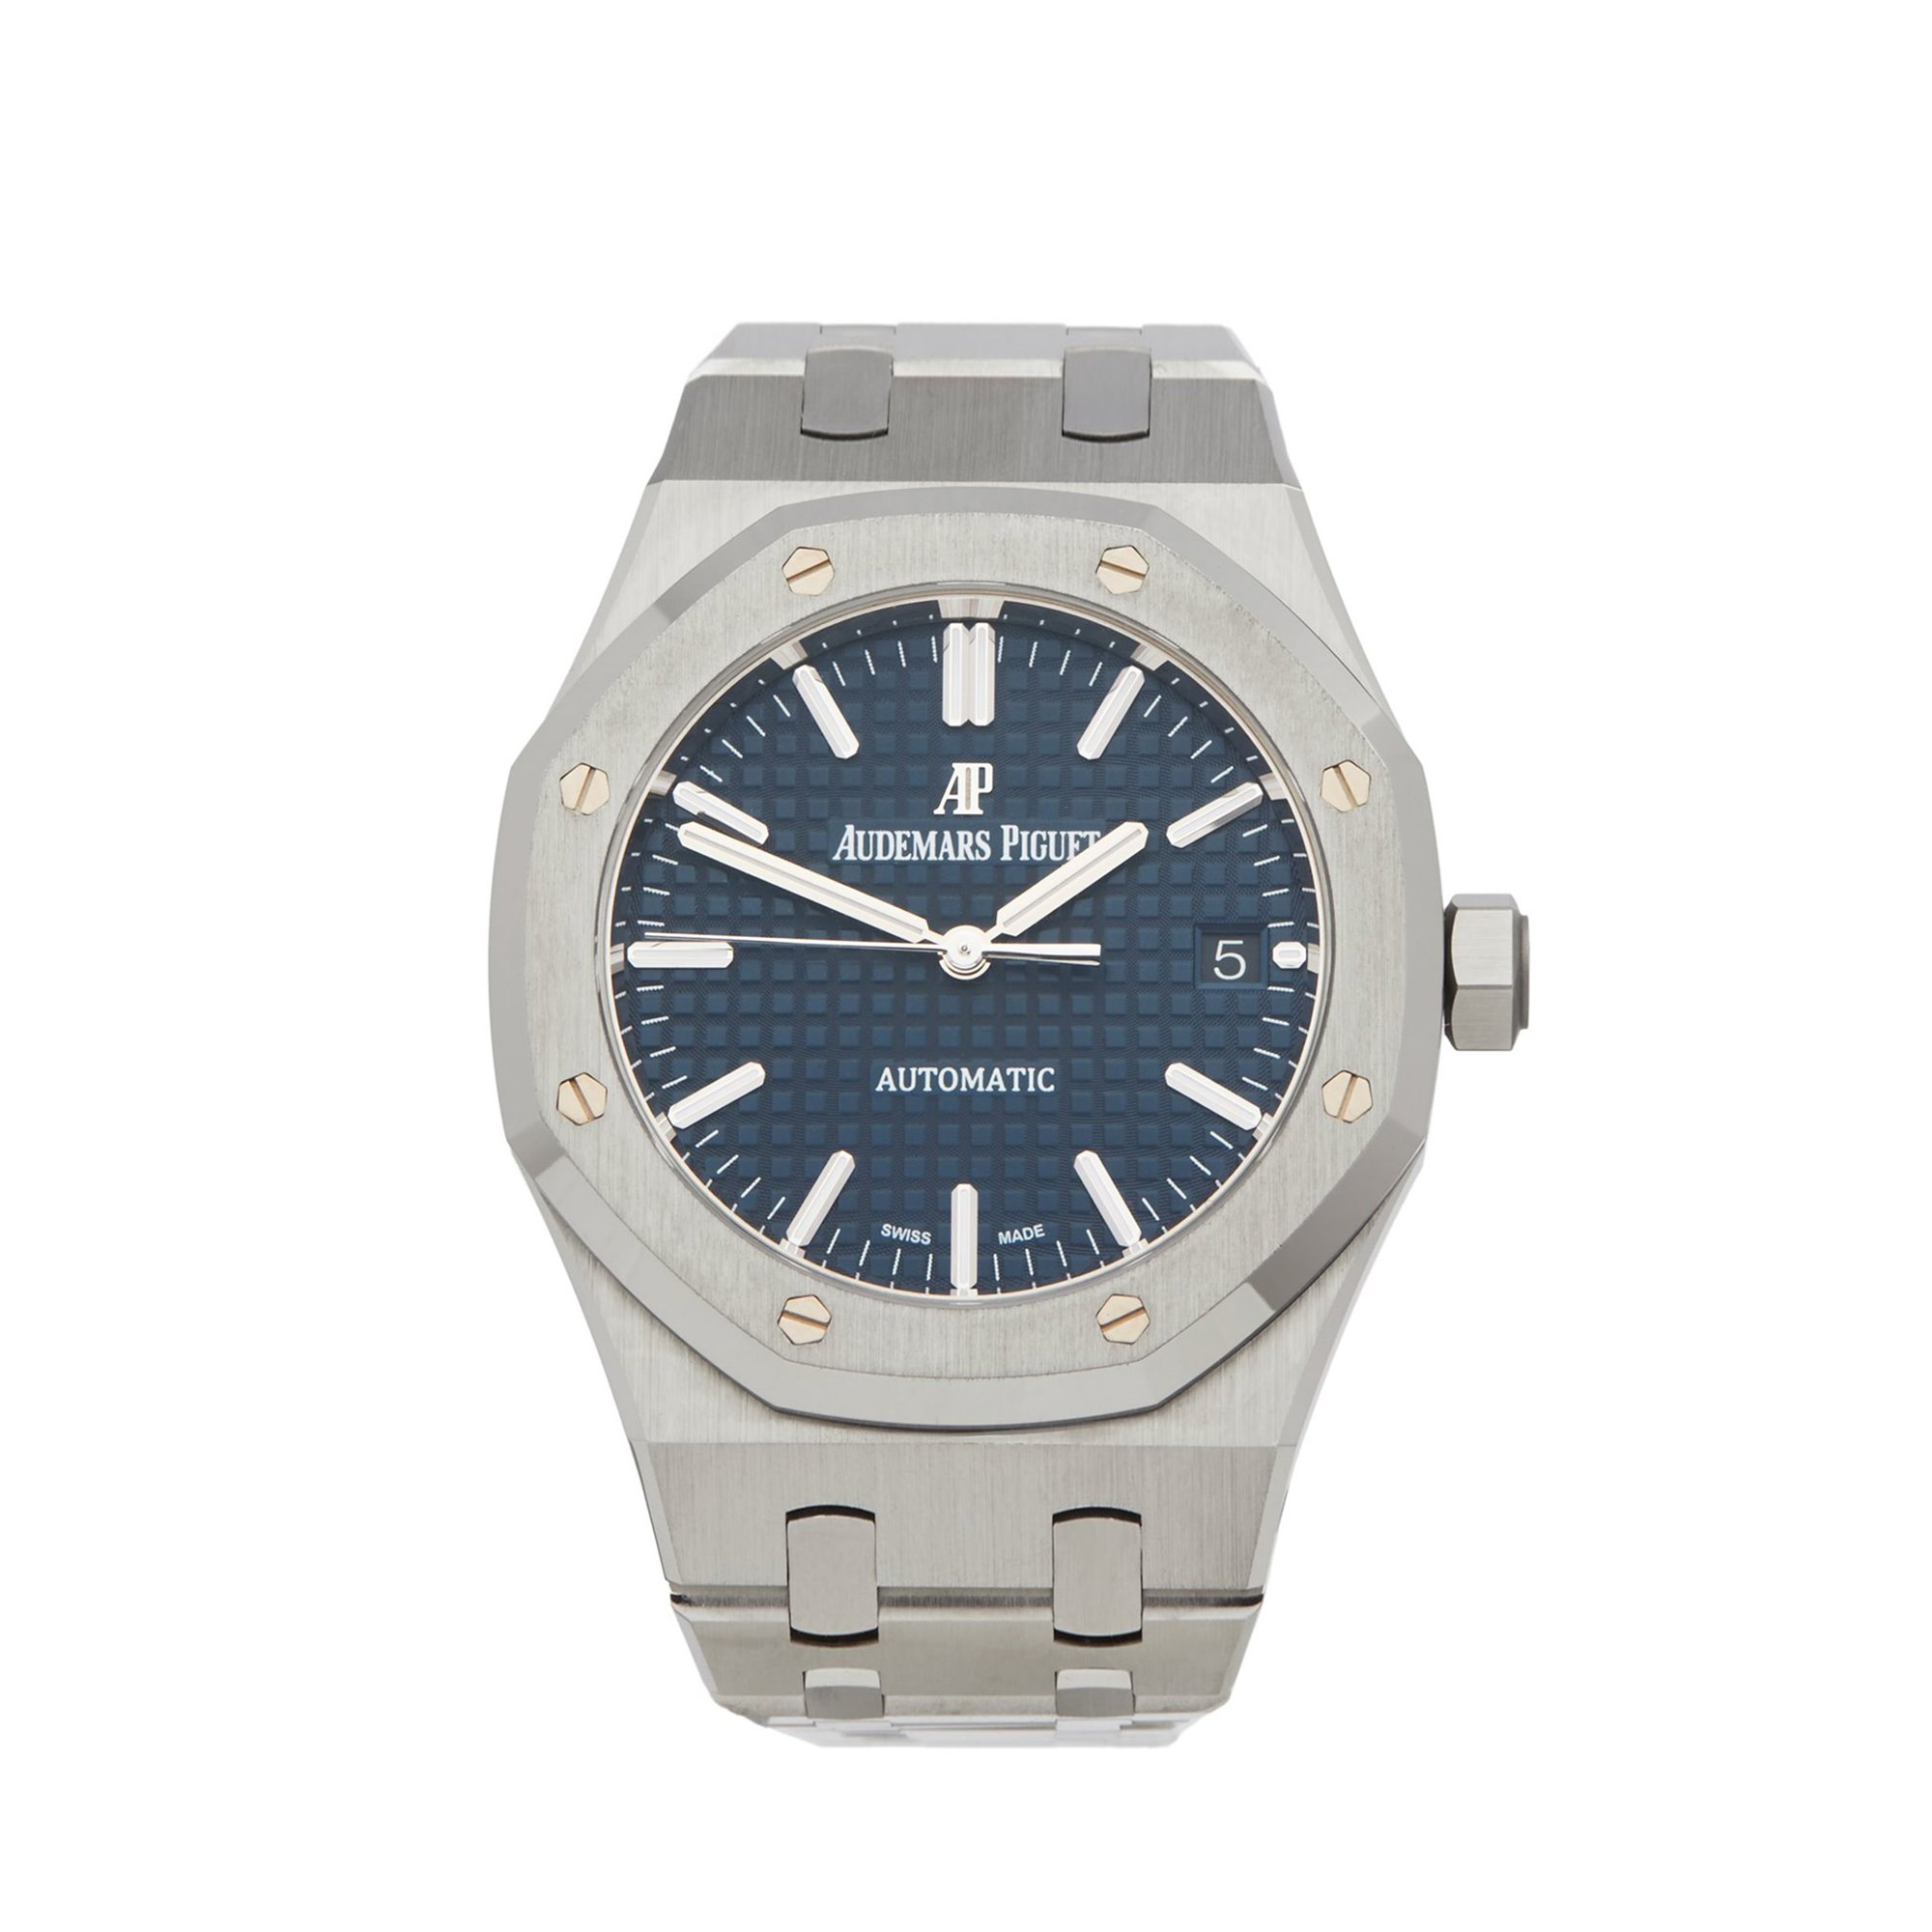 Audemars Piguet Royal Oak Stainless Steel 15450ST.OO.1256ST.03